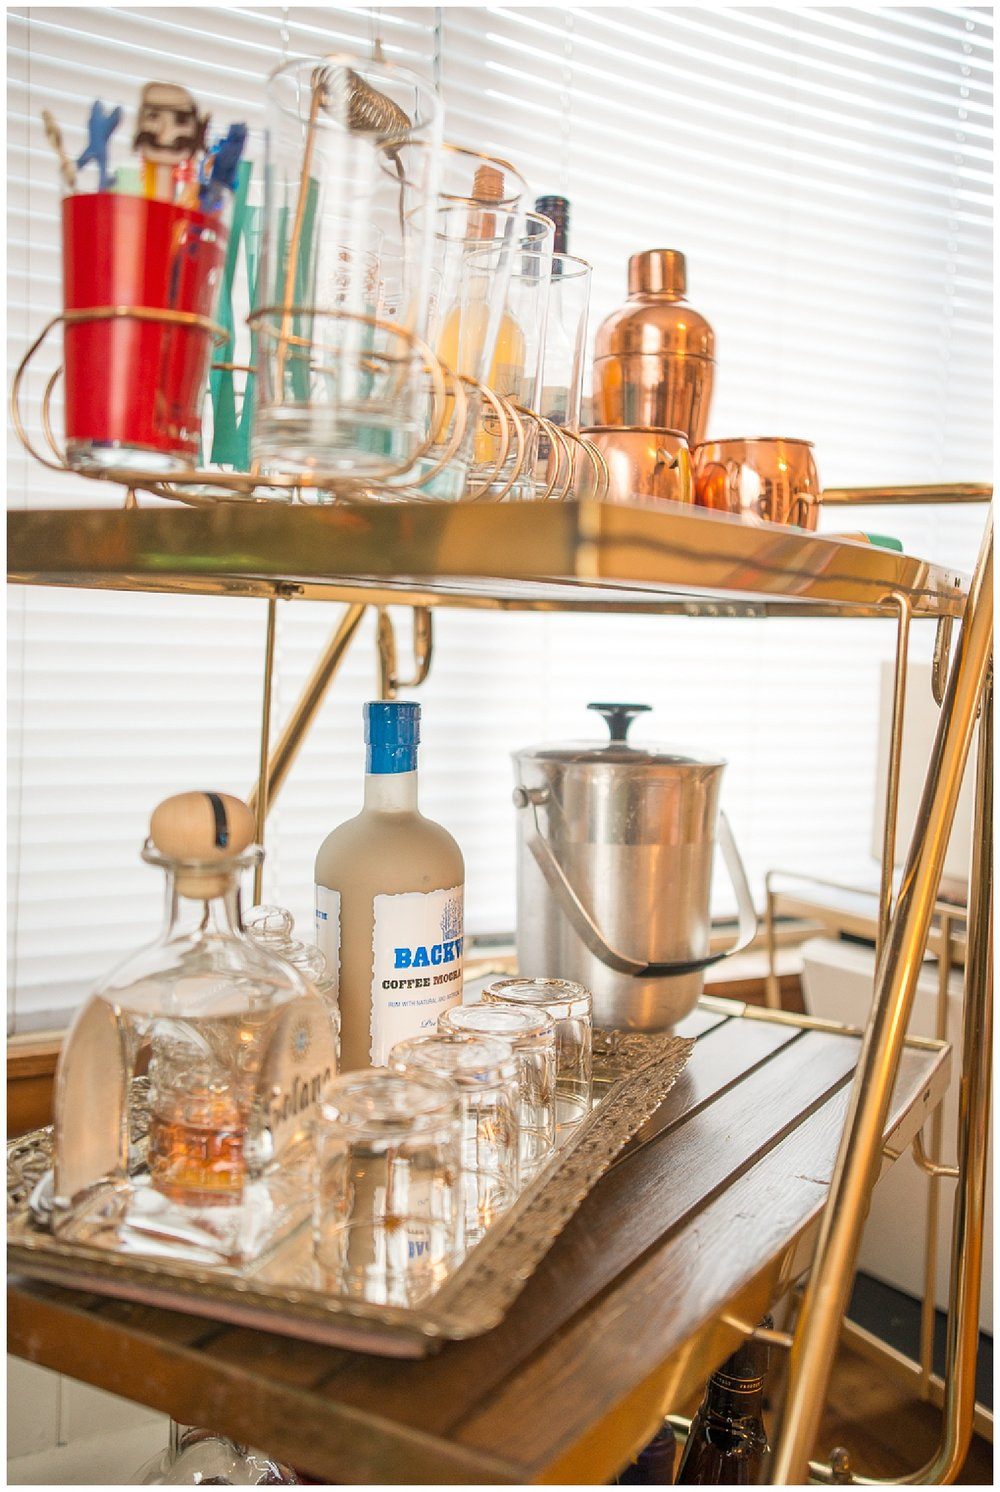 Her fave thing is this vintage bar cart that she got from Fresh Digs. Most of what's on it are thrift store finds. I love the gold glass carrier and the gold vanity tray she's using to hold barware.